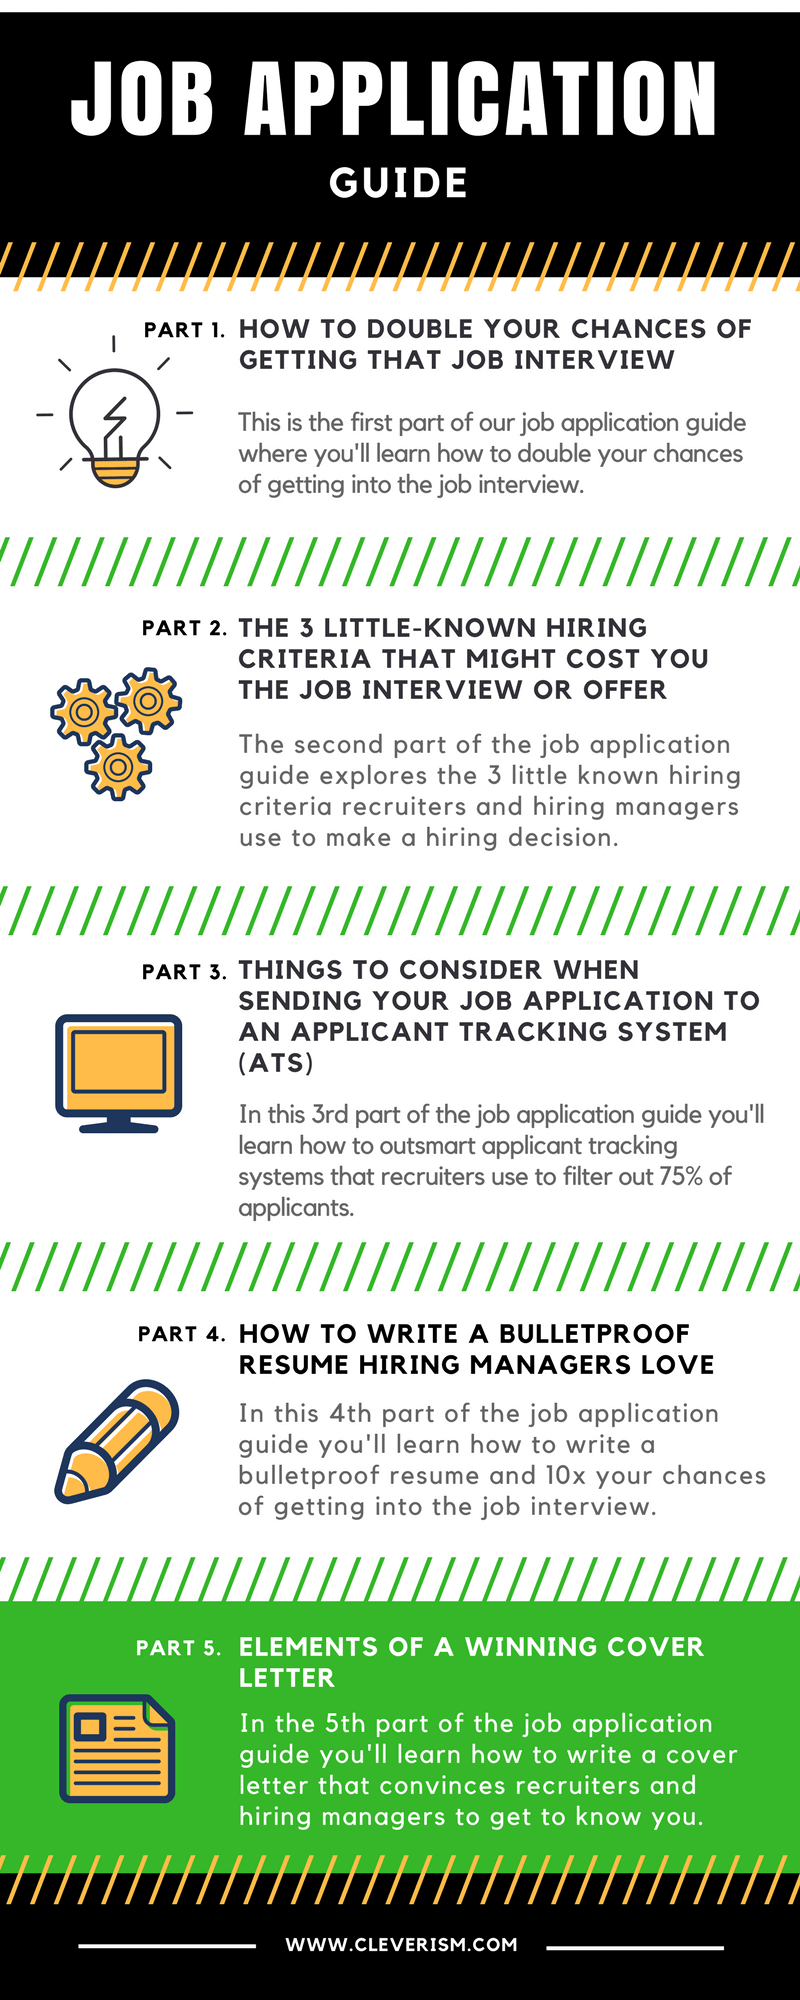 Winning Cover Letters Job Application Guide  Elements Of A Winning Cover Letter